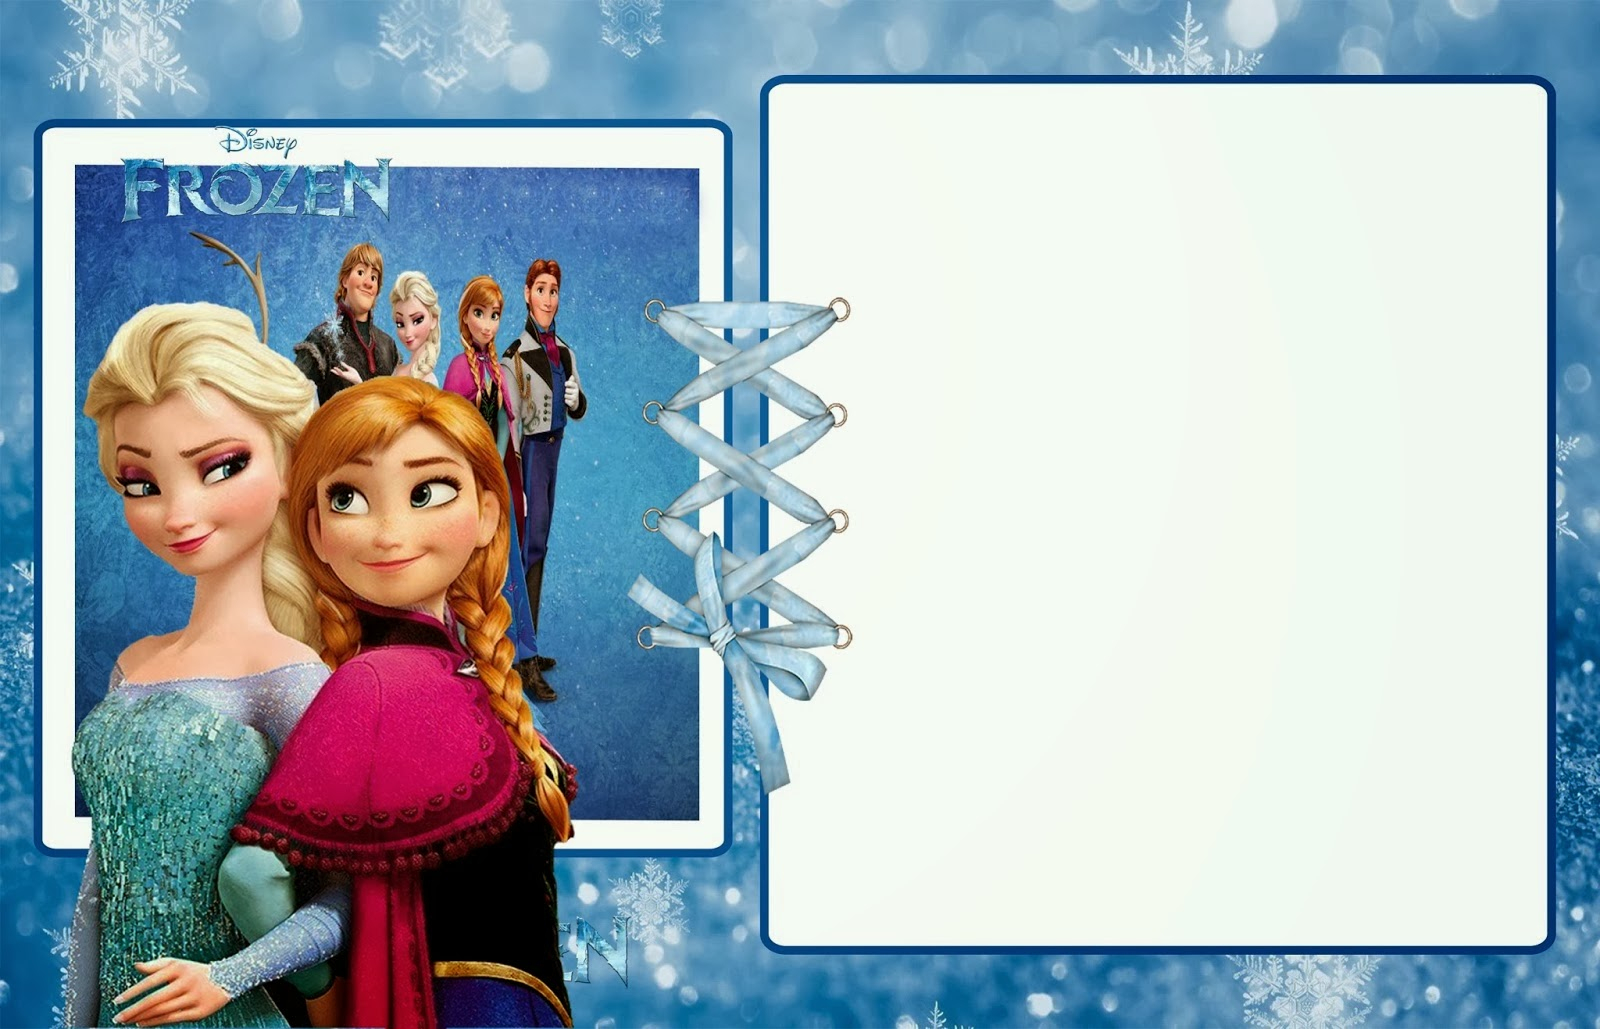 photo regarding Frozen Printable Invitations named Frozen Celebration: No cost Printable Invites. Oh My Fiesta! Inside